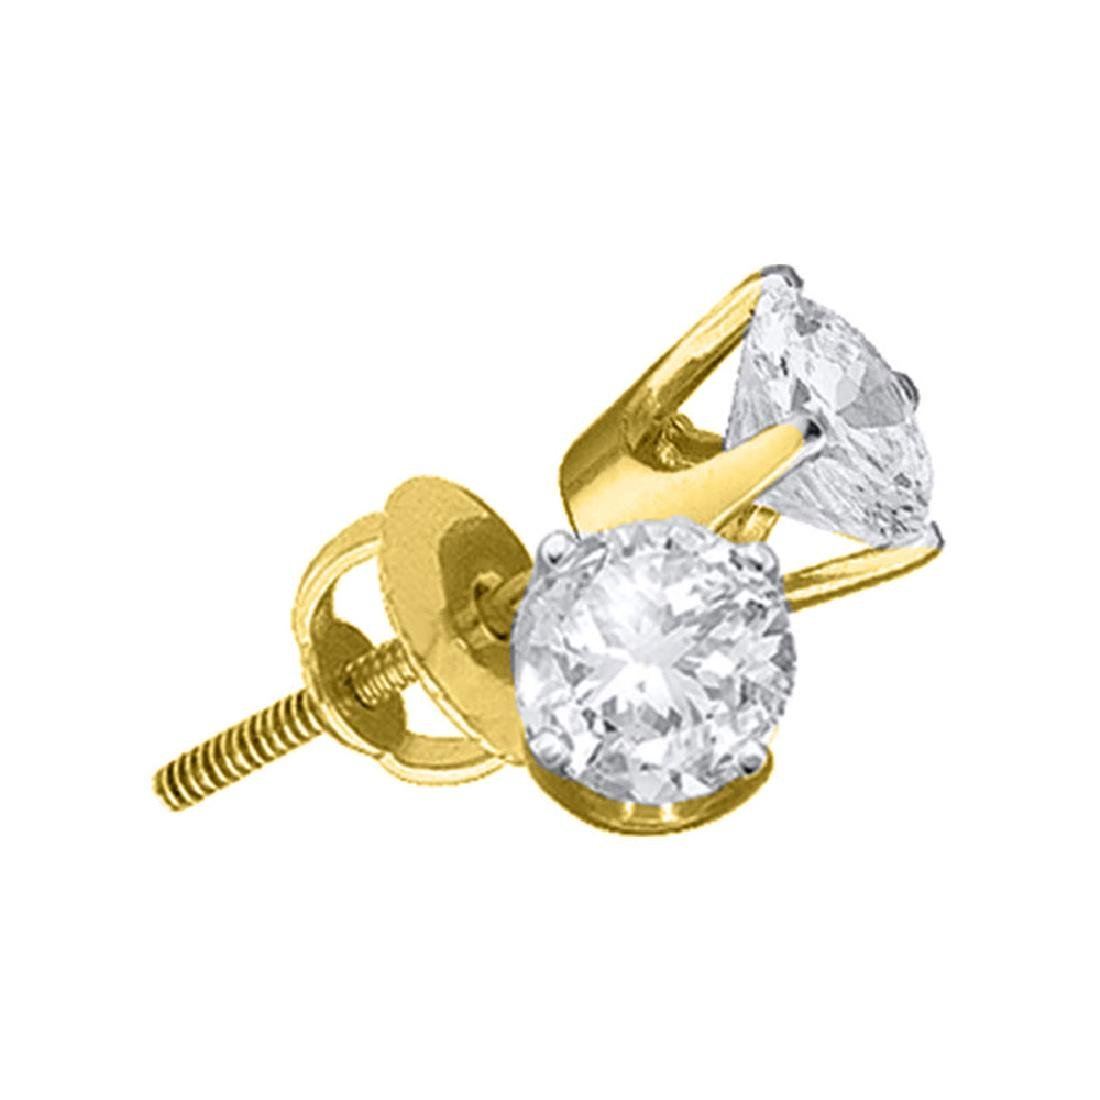 0.50 CTW Diamond Solitaire Stud Earrings 14KT Yellow